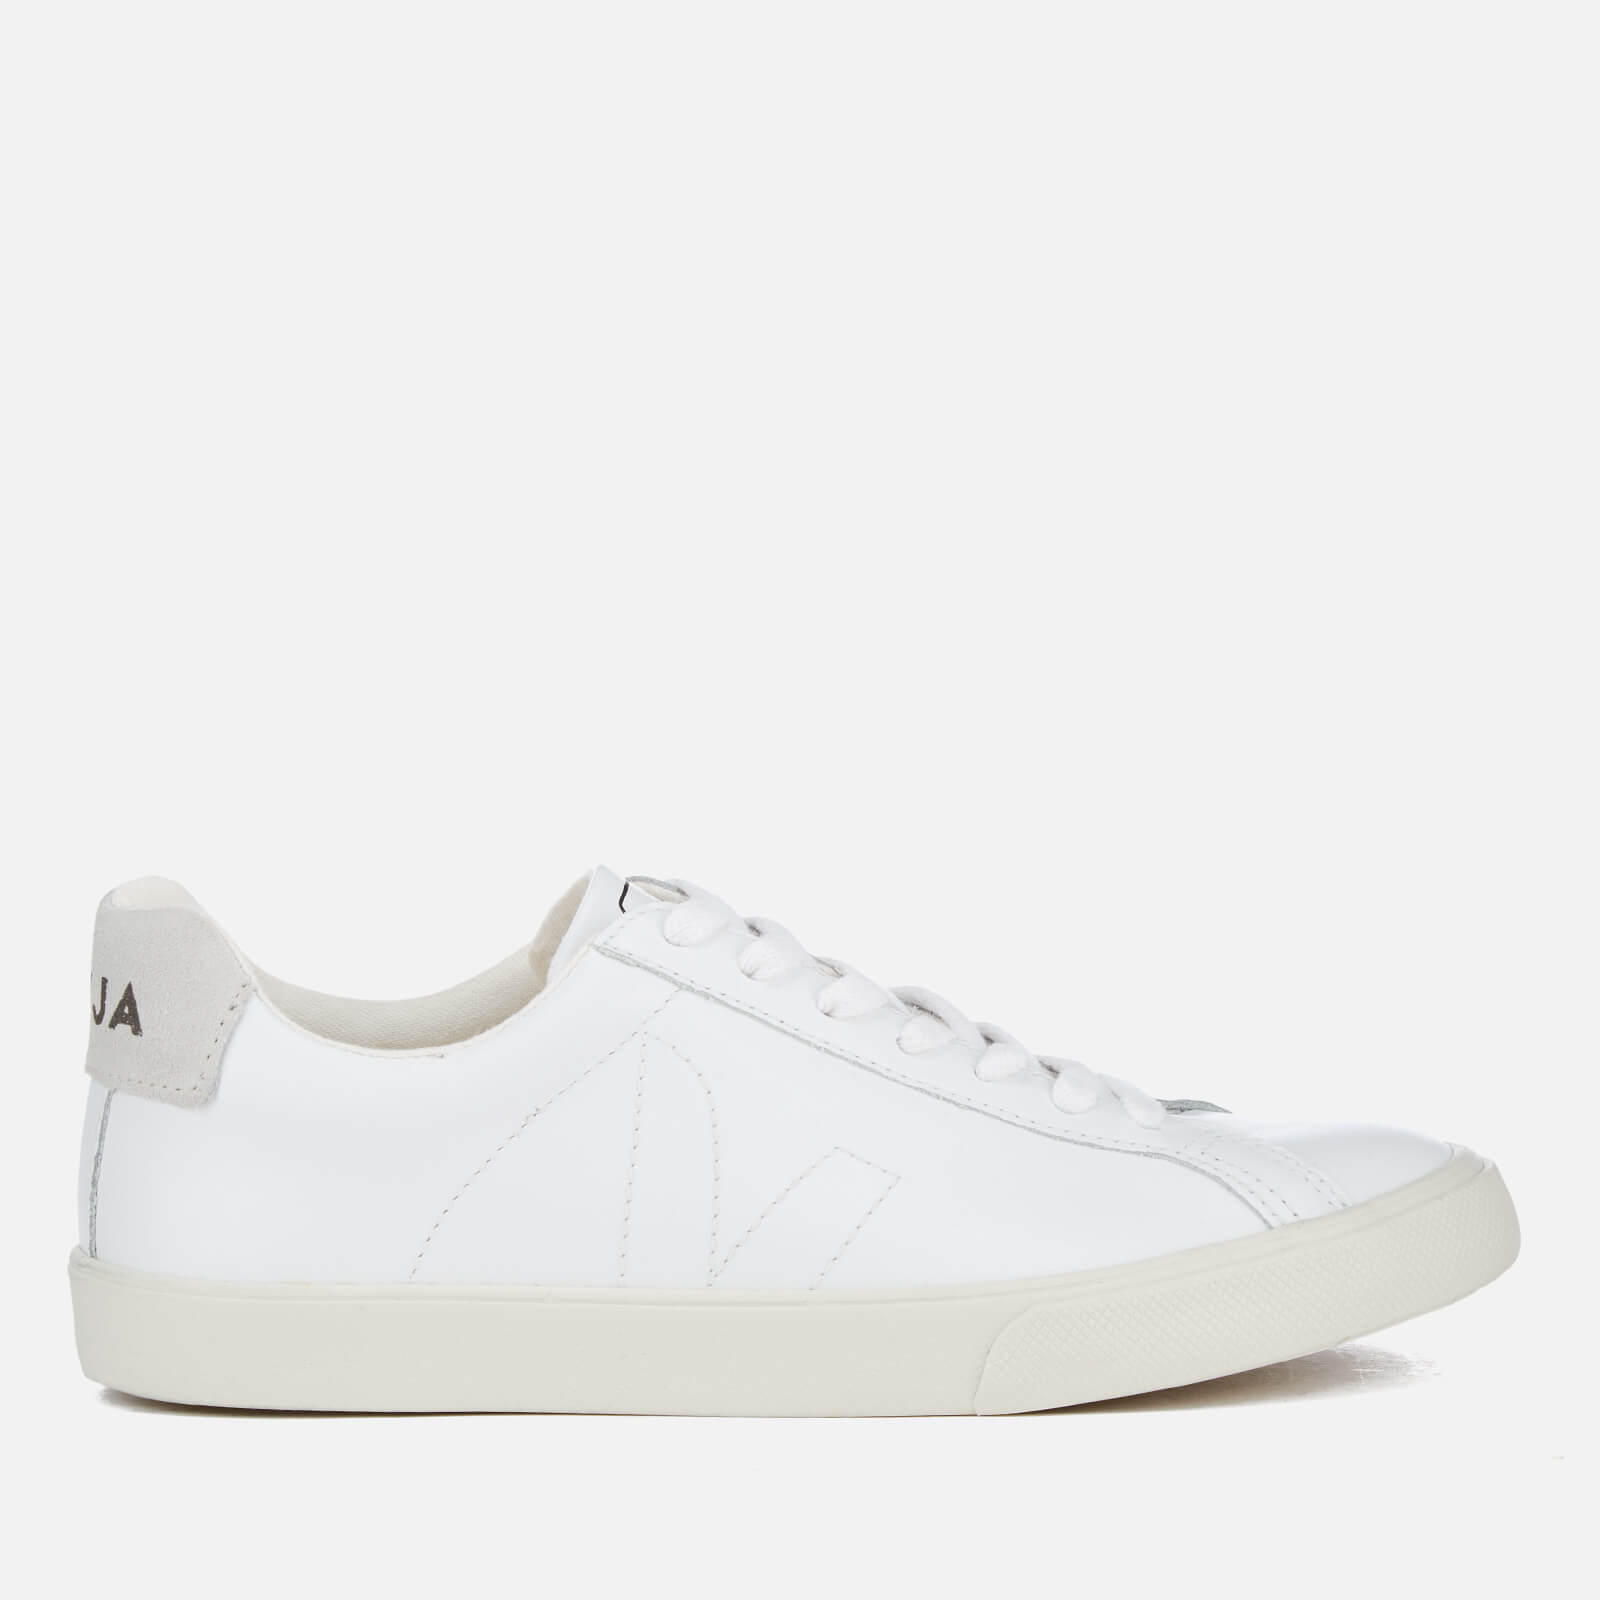 7dbeaeac47b7 Veja Men s Esplar Leather Low Top Trainers - Extra White - Free UK Delivery  over £50